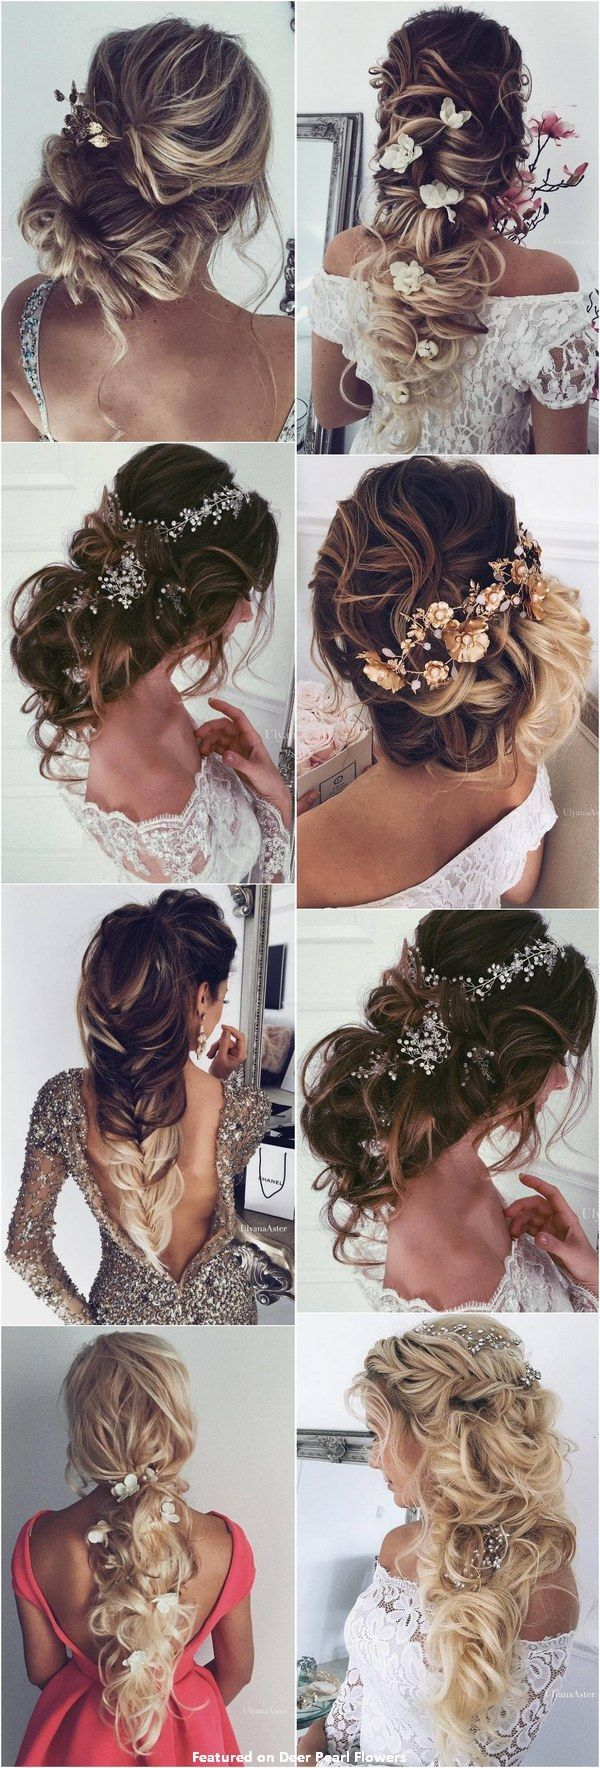 best long hairstyles ideas images on pinterest hairstyle ideas